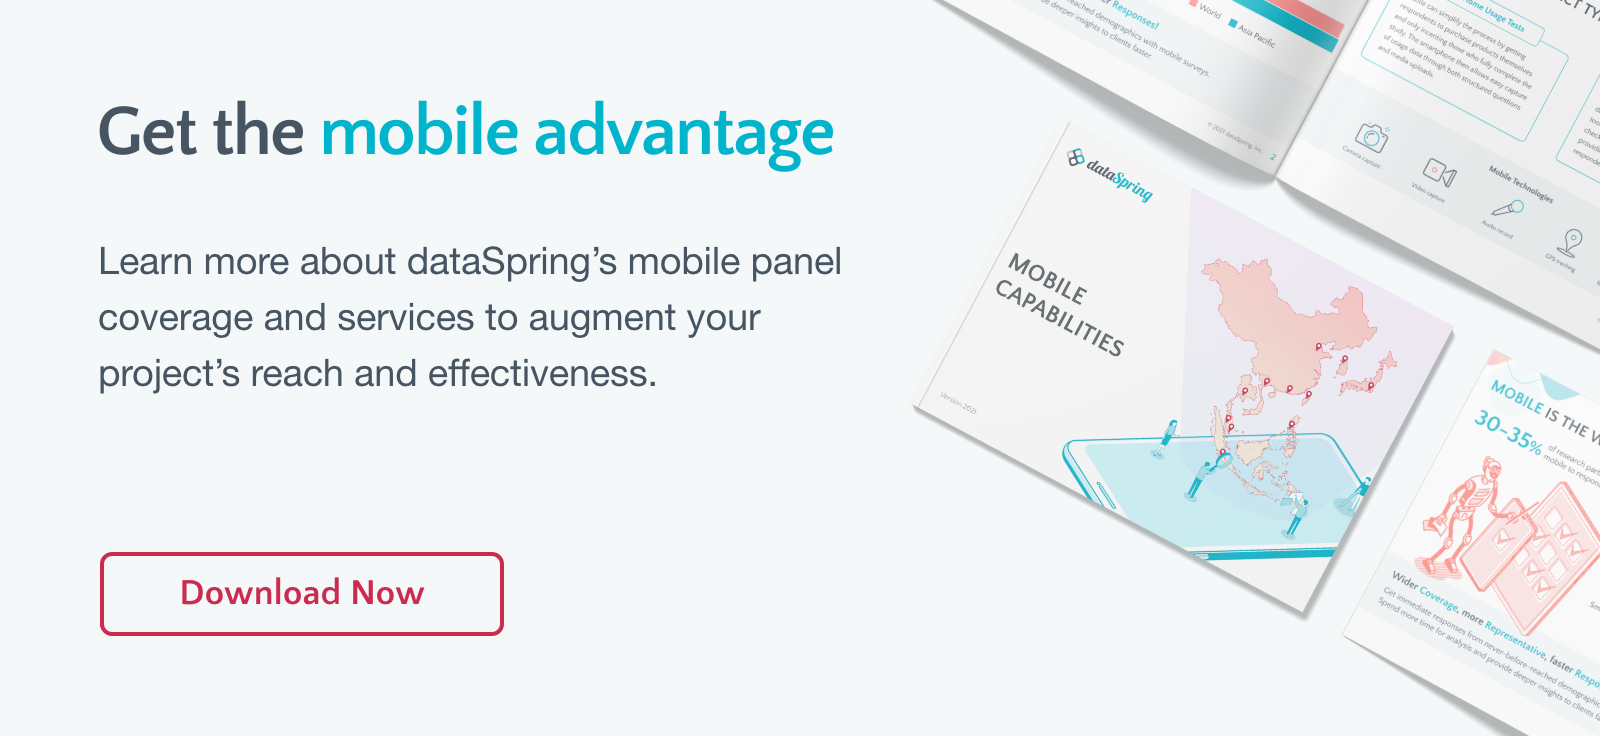 Learn more about dataSpring's mobile research capabilities